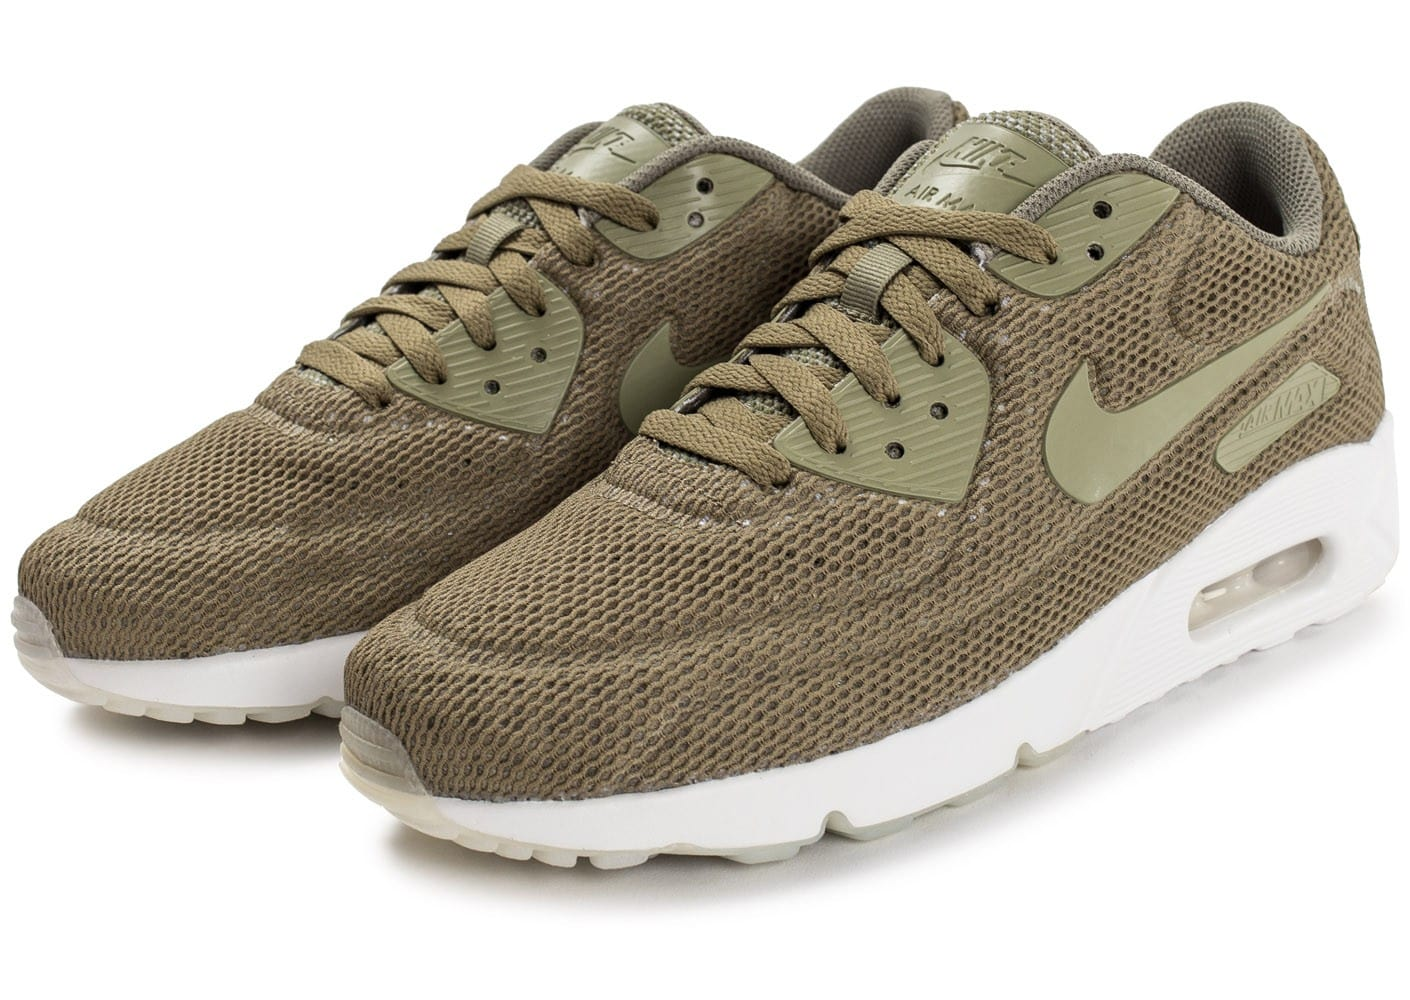 new product df77e 72a60 Chaussures Nike Air Max 90 Ultra 2.0 Breeze kaki vue intérieure . ...